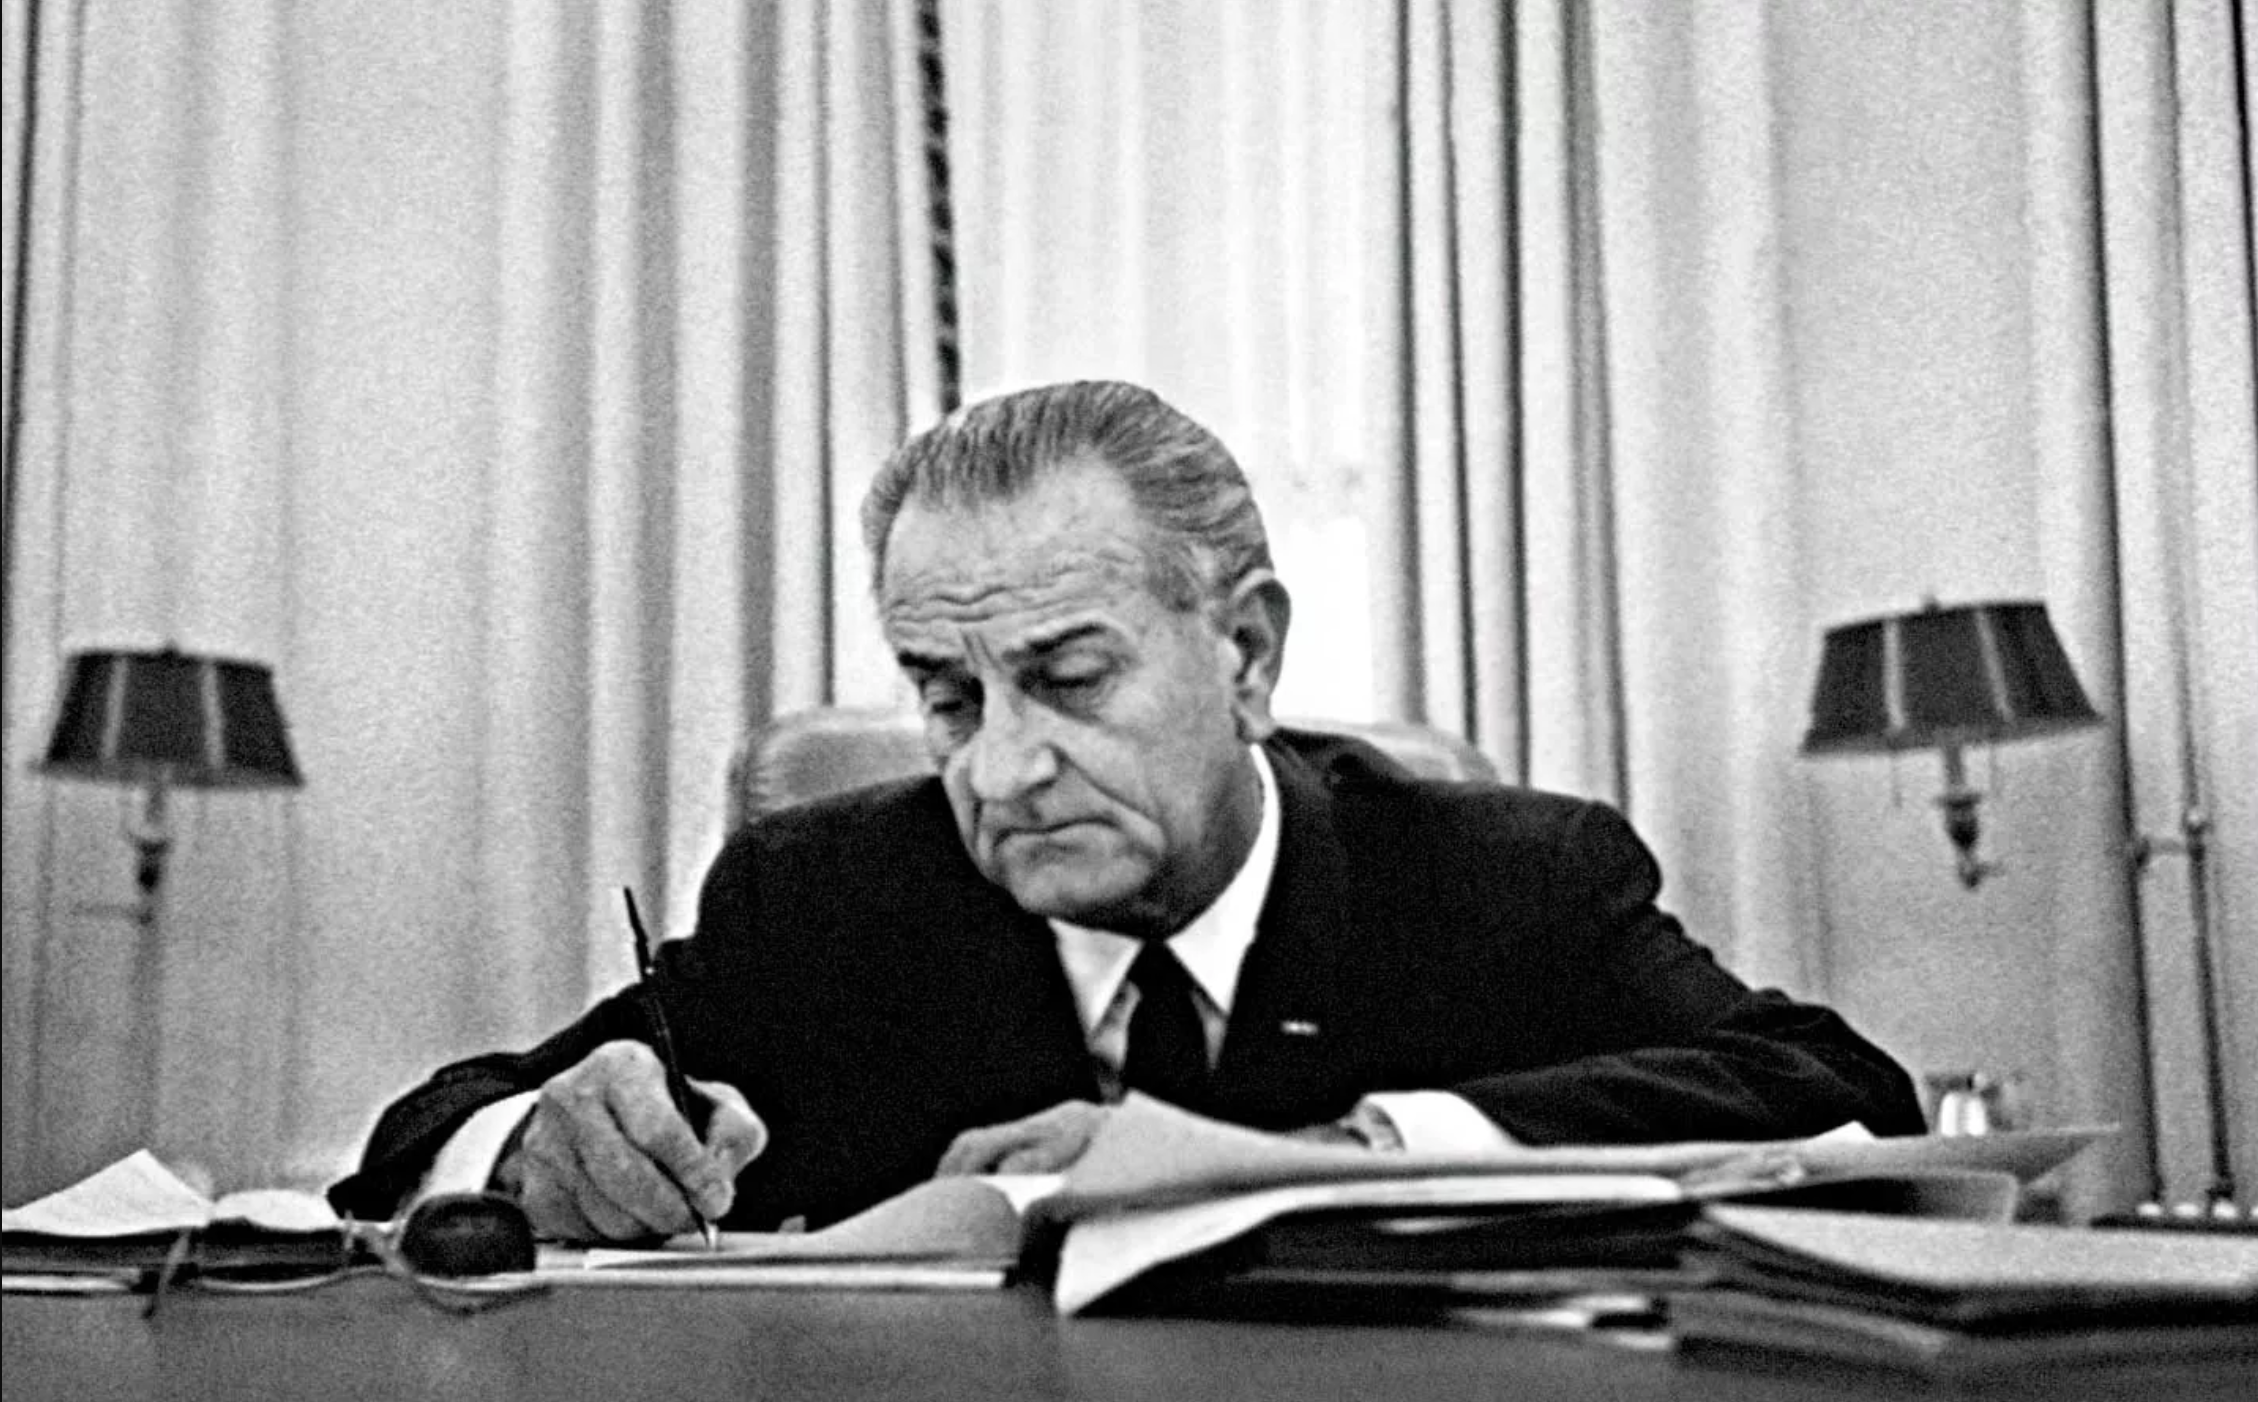 Lyndon B. Johnson signing an executive order calling Reserve Troops to active duty, 1968.